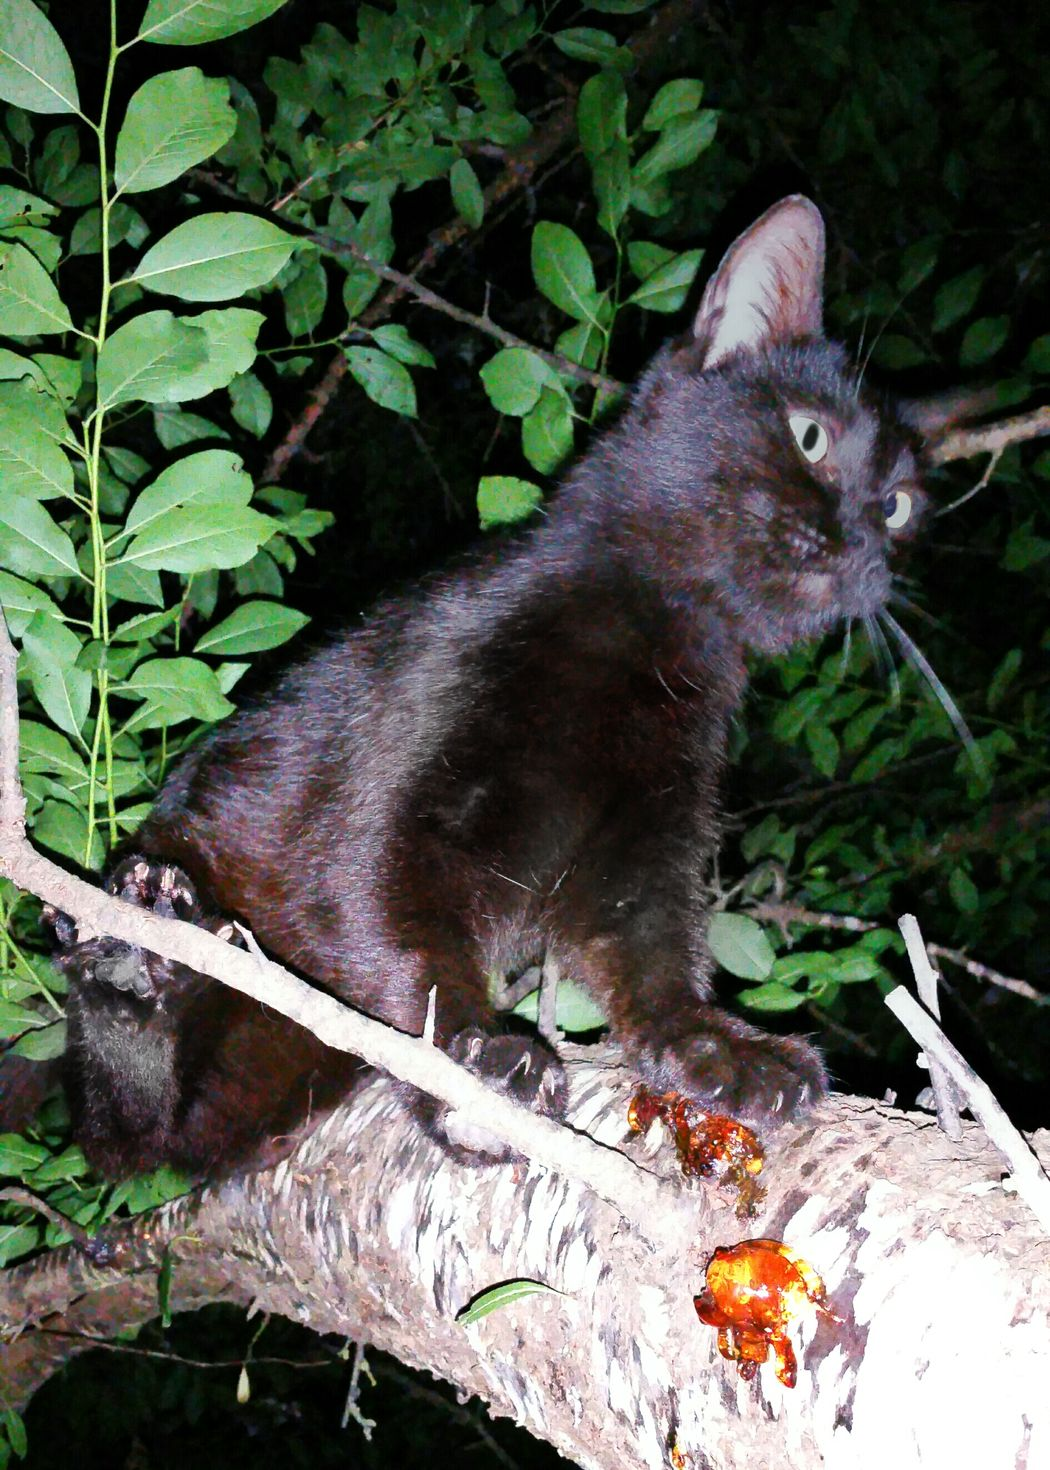 Cat Black Cat Cat In Tree Cat Climbing Animal Animal Photography Cats Of EyeEm Night Photography Cat Hunting  Nocturnal Feline Bad Luck? Do Not Cross It's Path Cat Lovers Animal Lovers Nature Photography Outdoor Photography